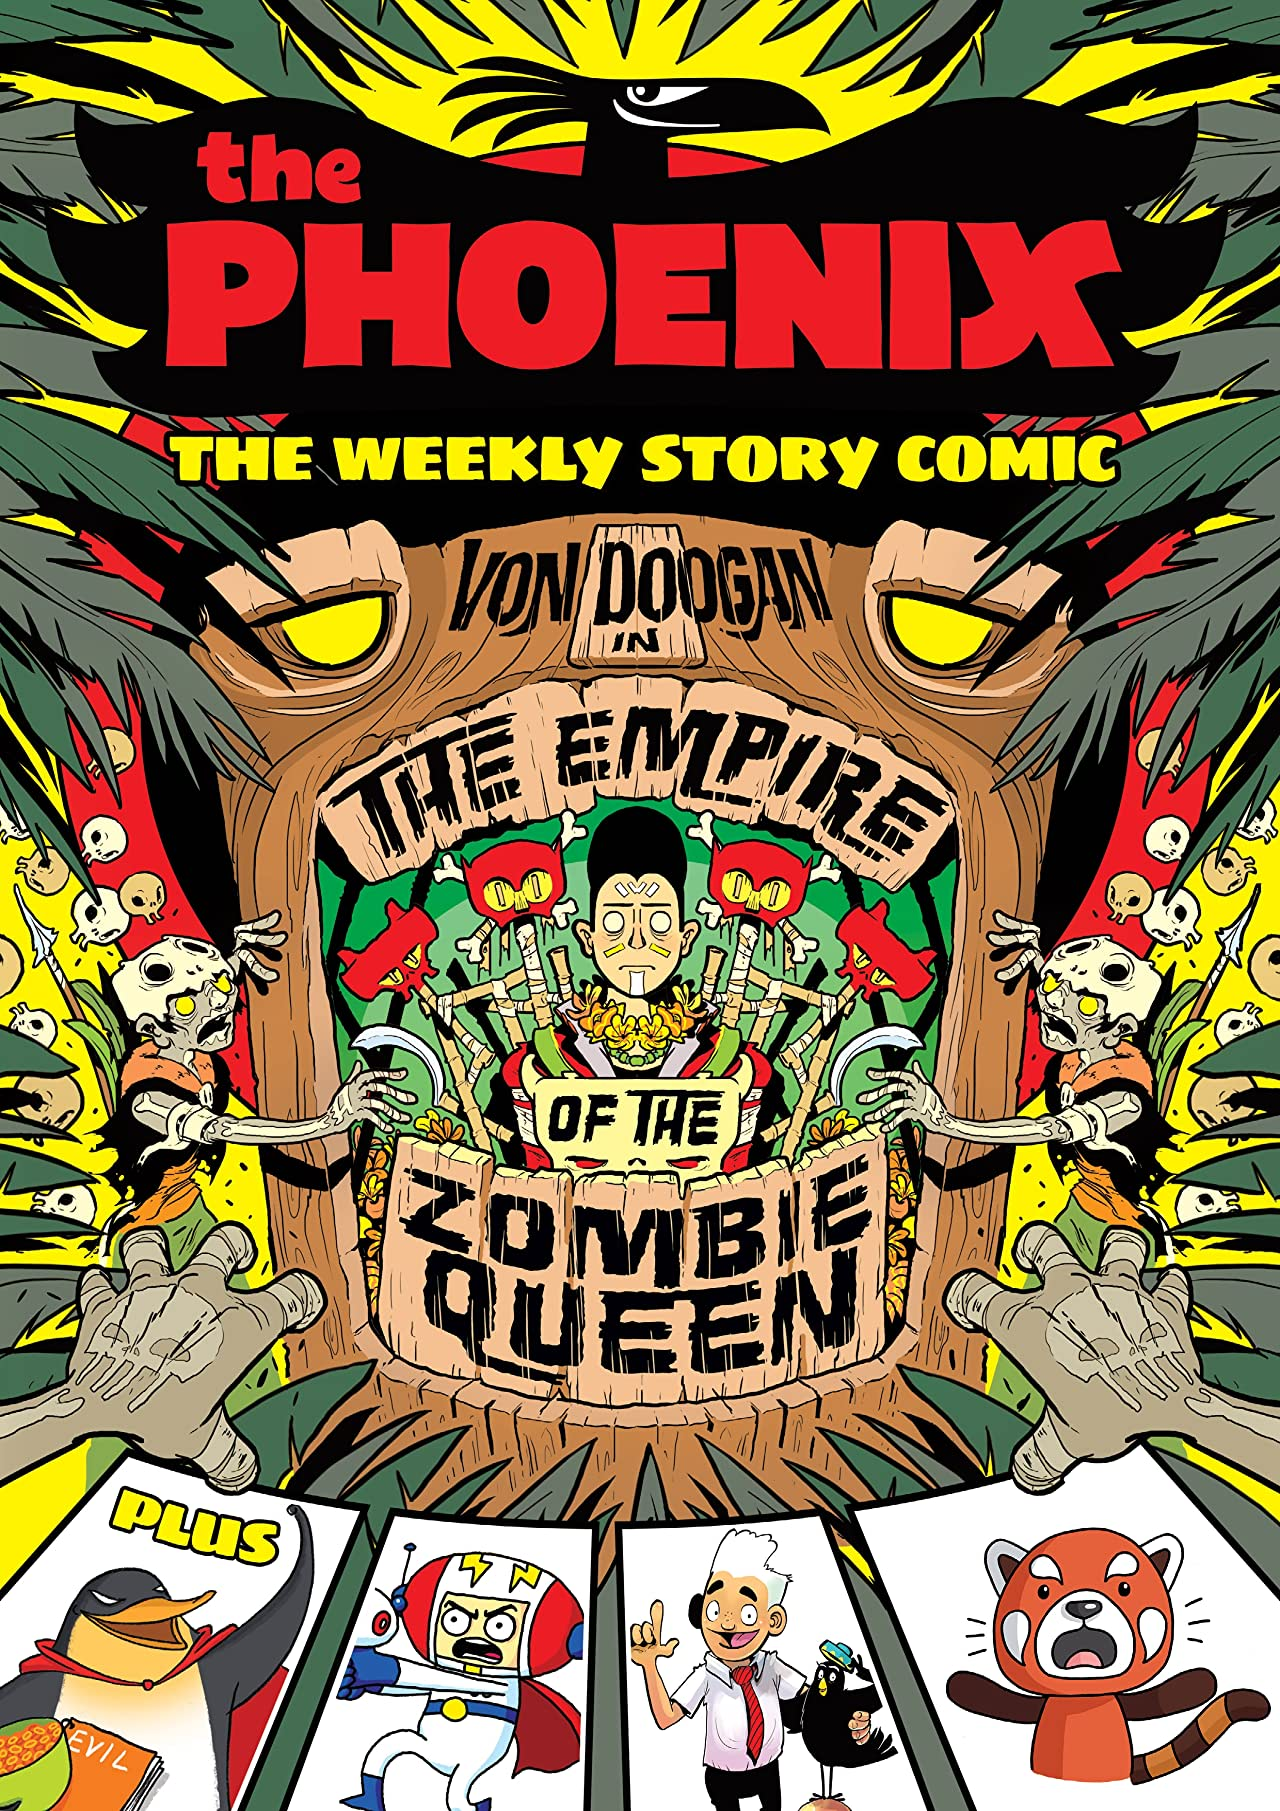 The Phoenix #212: The Weekly Story Comic